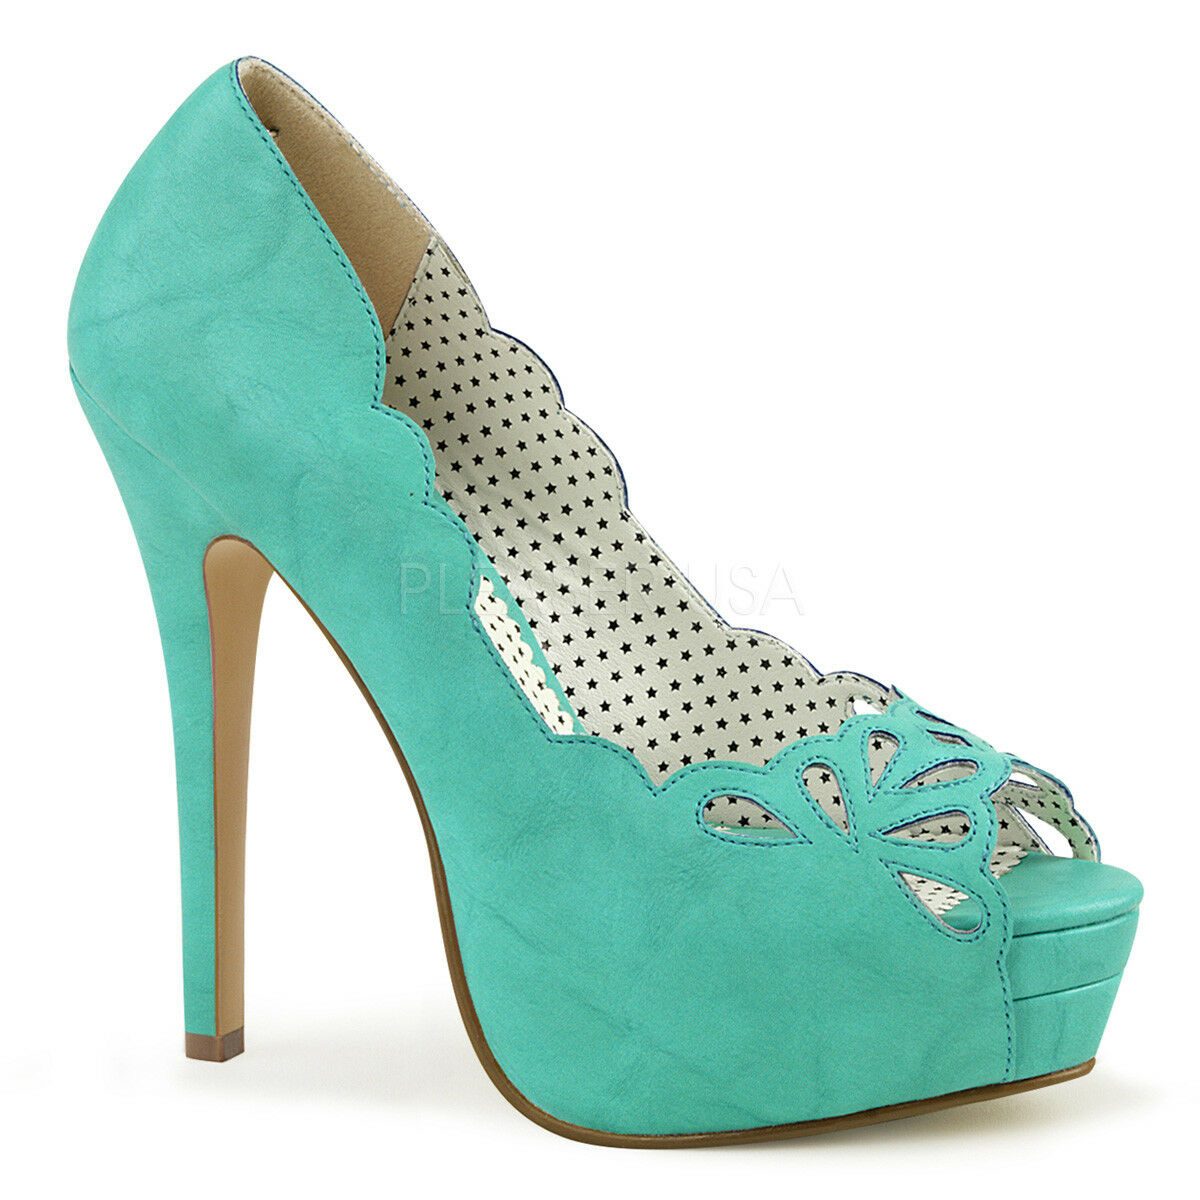 Pin Up Couture BELLA-30 Womens Womens Womens Teal Faux Leather Platform Peep Toe Pump Cut-Out b5afb6